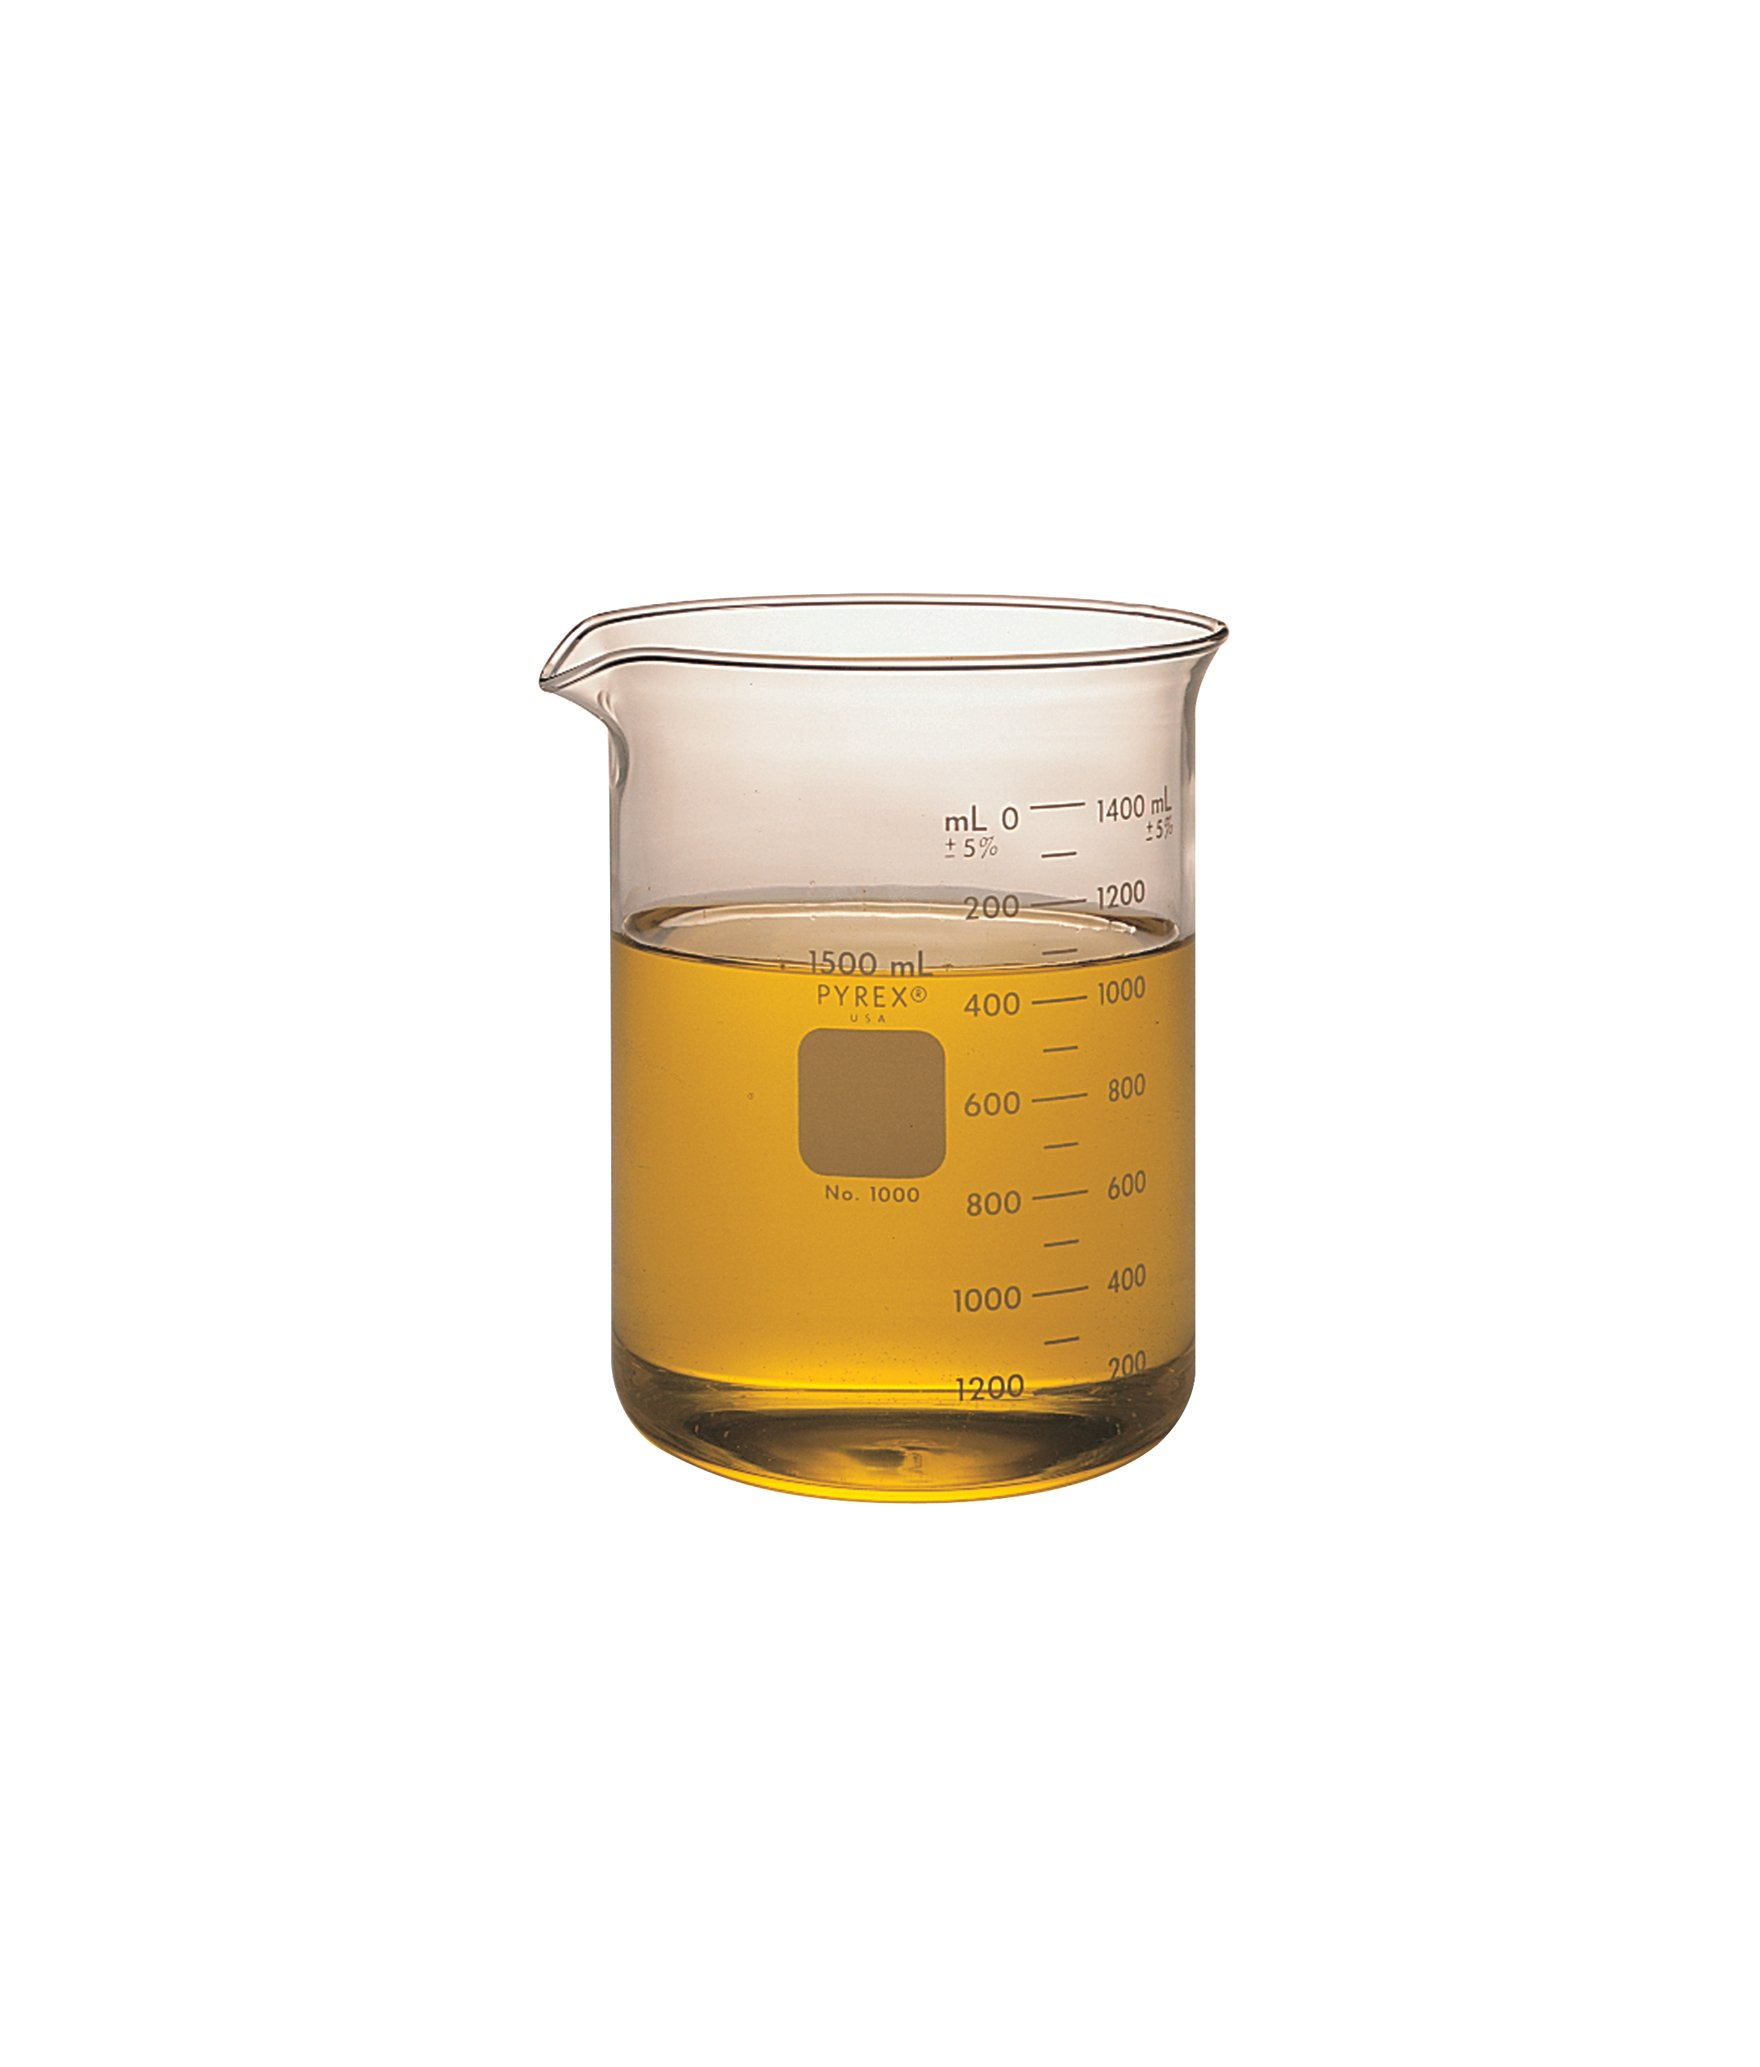 Corning Pyrex Borosilicate Glass Low Form Griffin Beaker, Graduated, 158mm H, 1000ml Capacity (Case of 24)